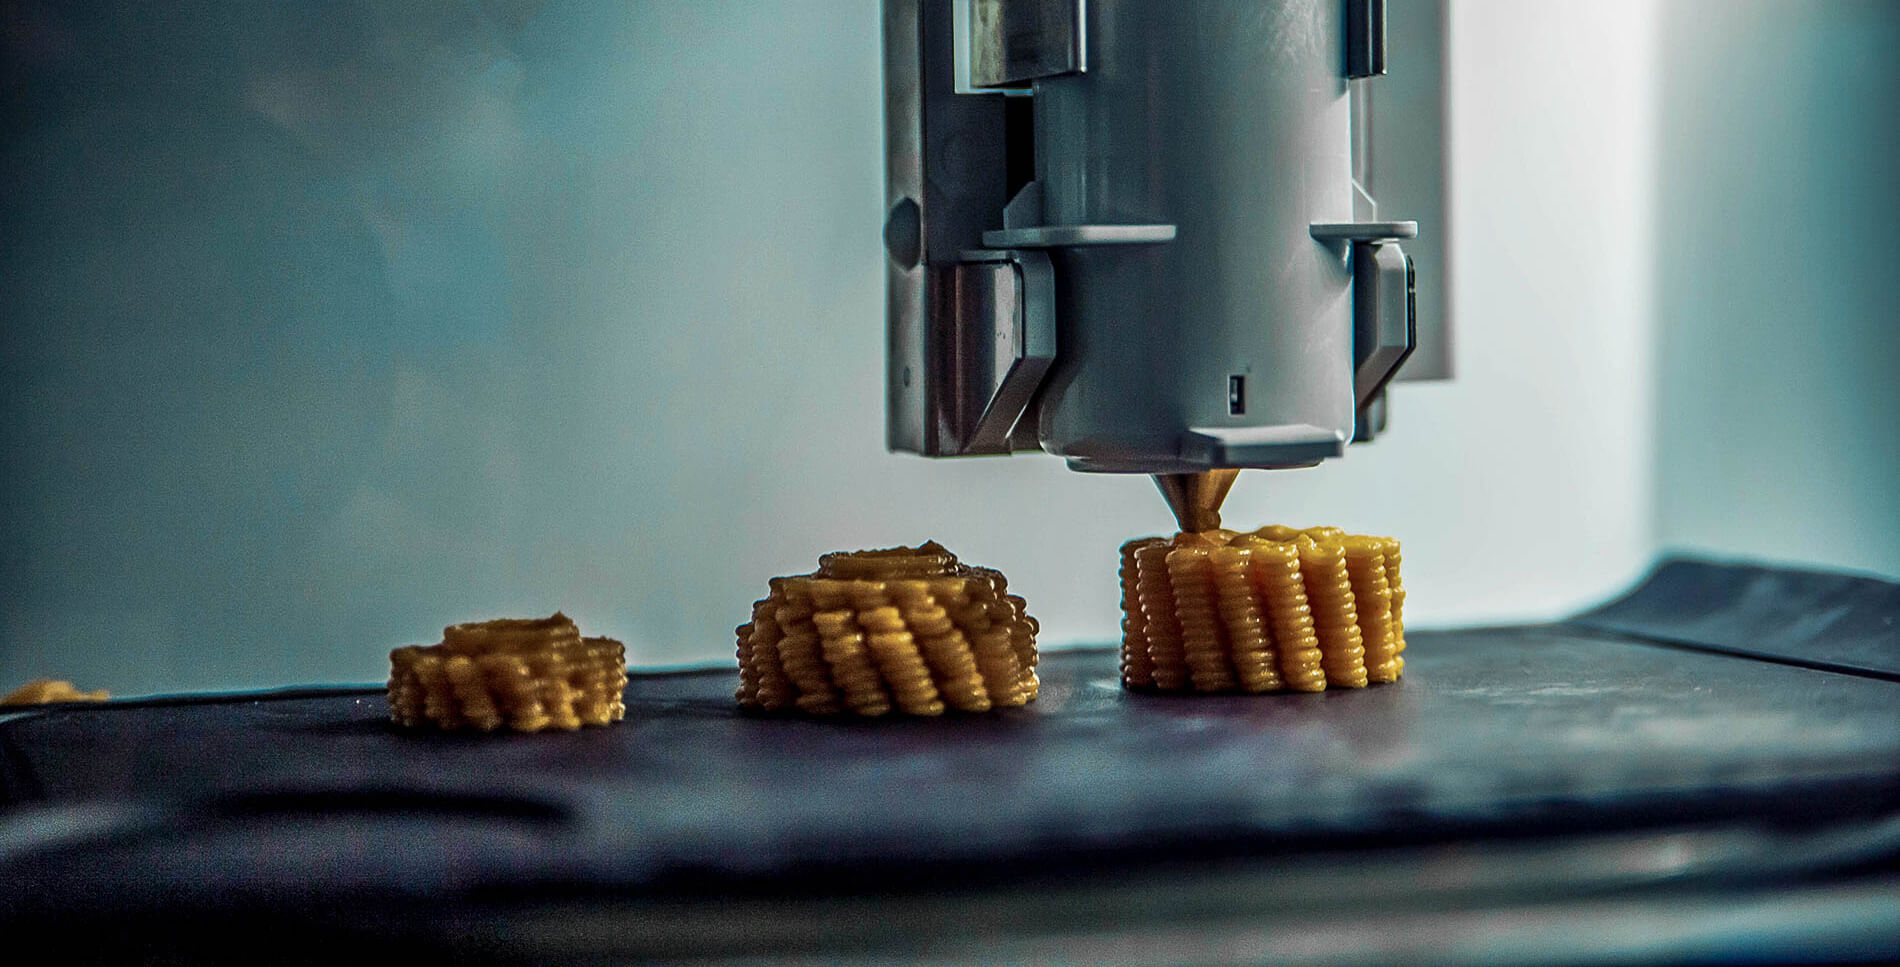 3D Printed Foods could Revolutionize the way Foods are being made